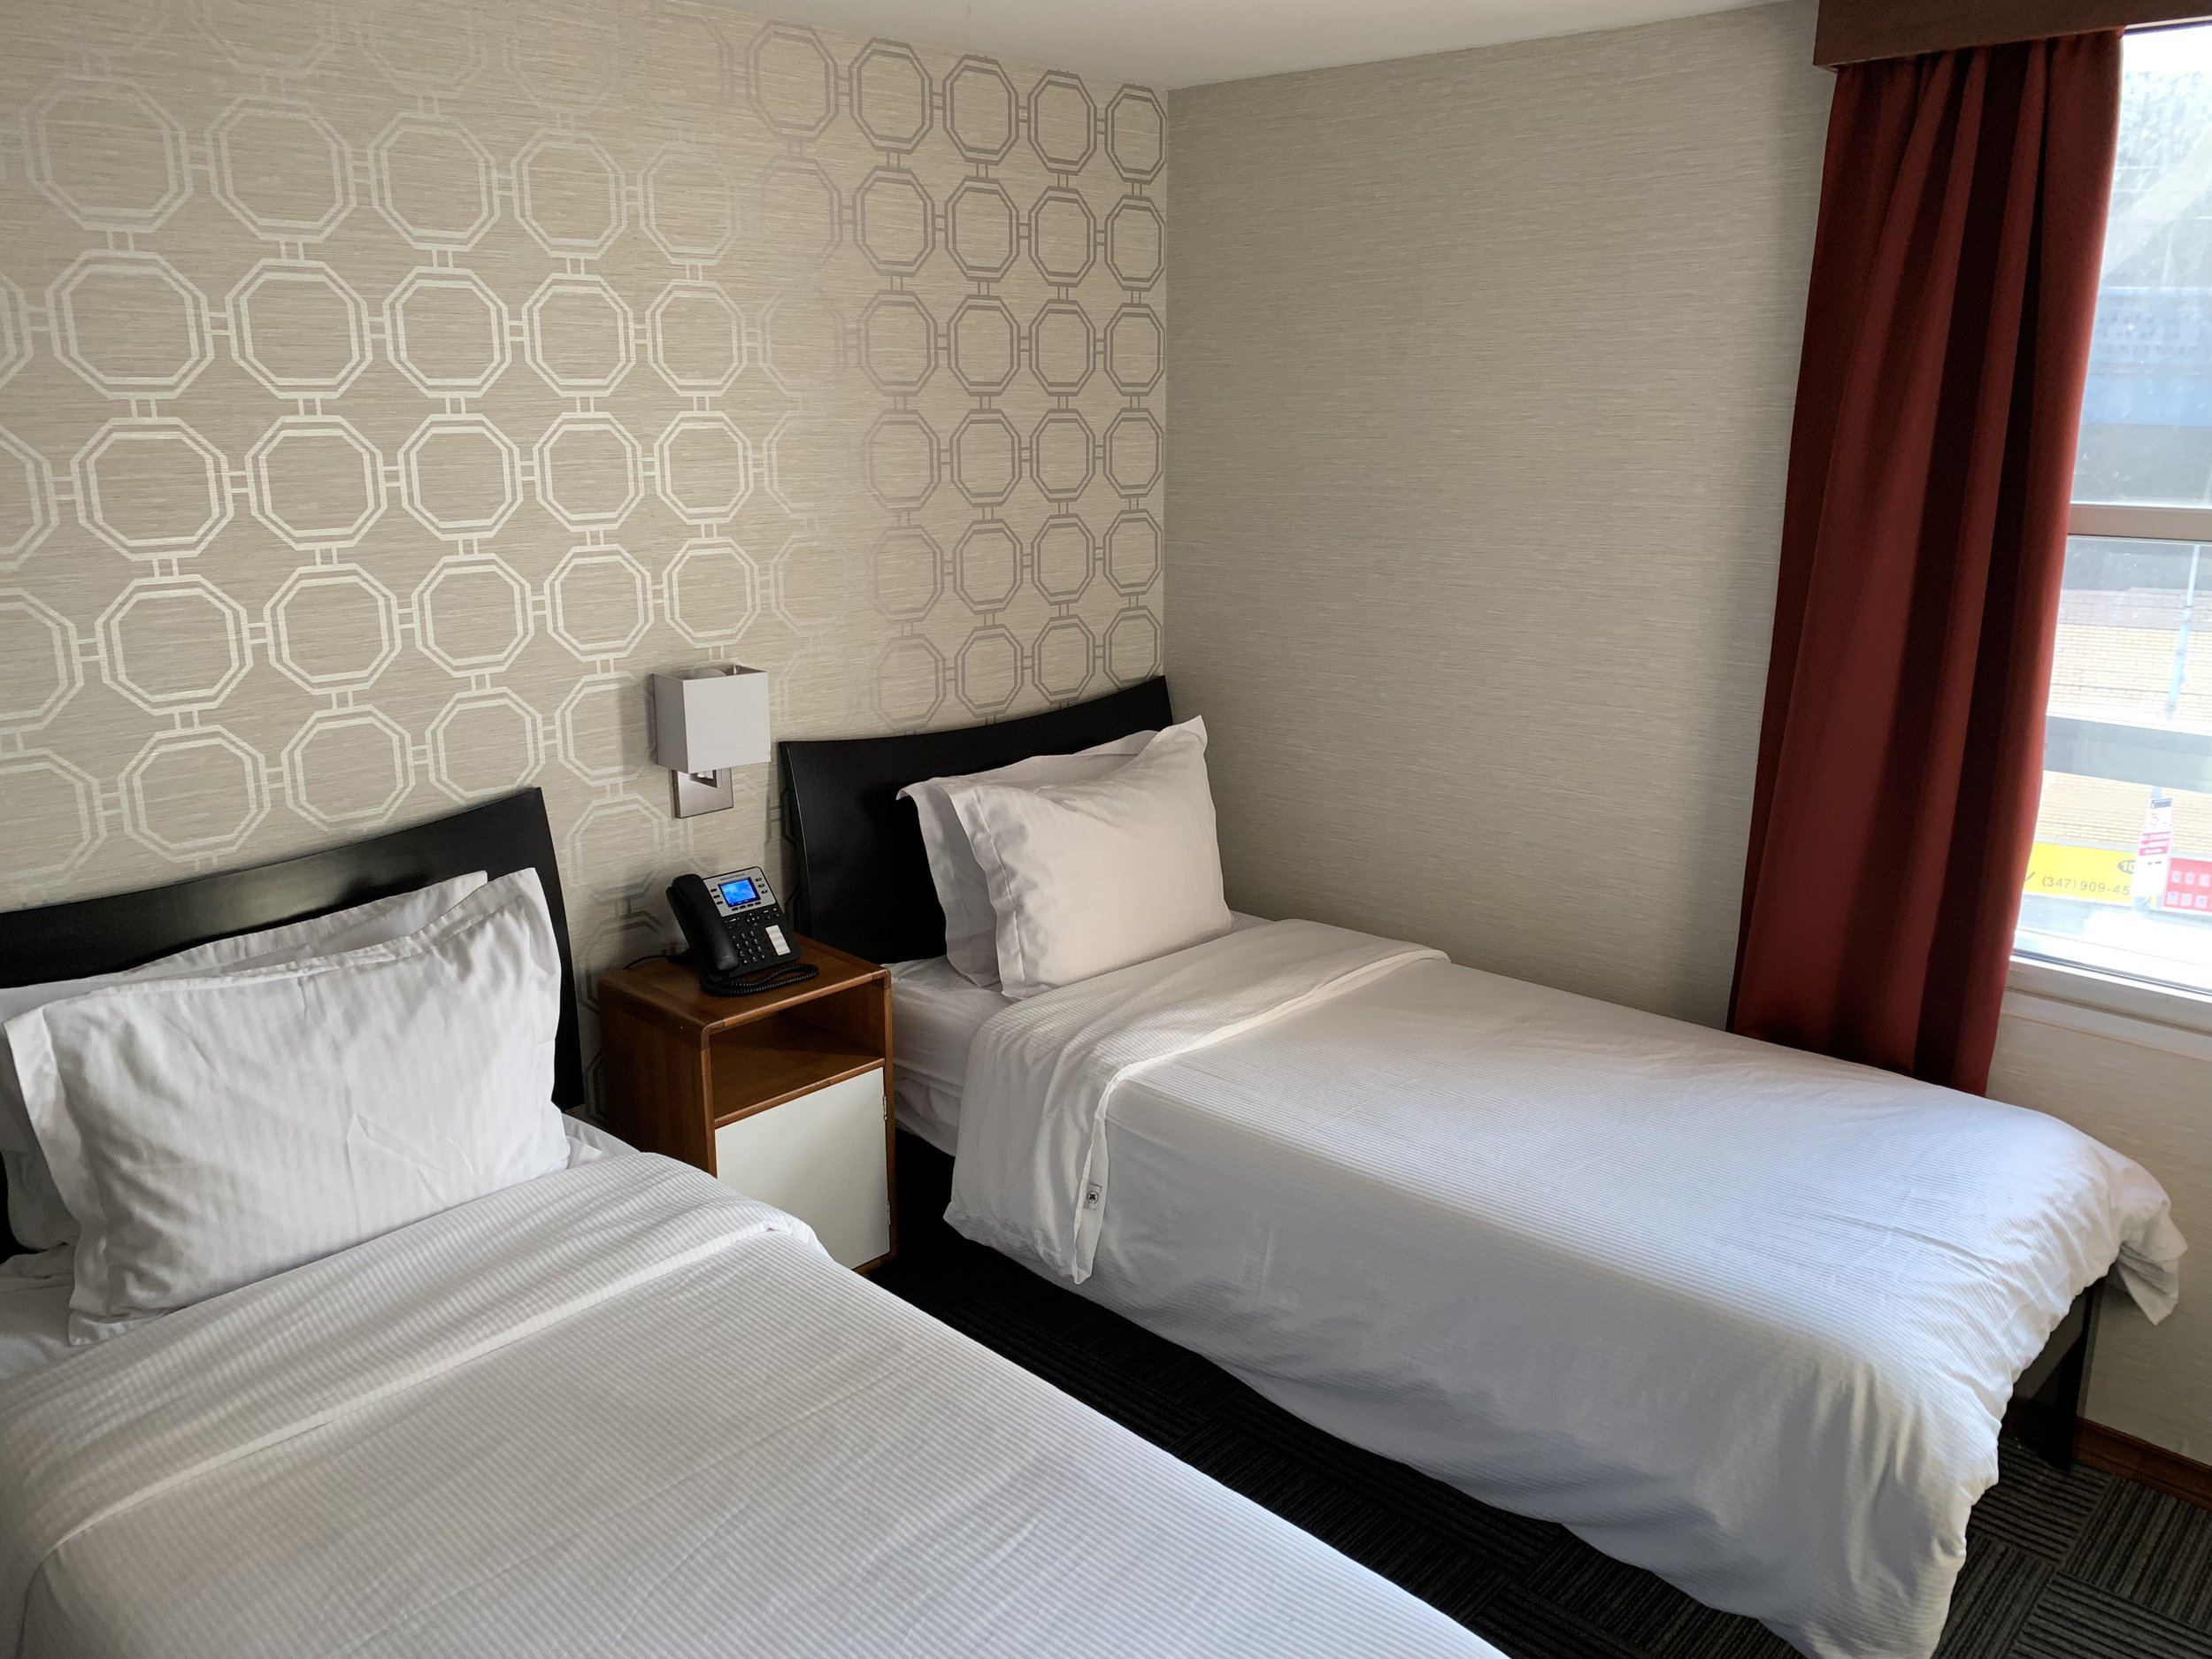 Our Twin Room, very spacious and accommodating